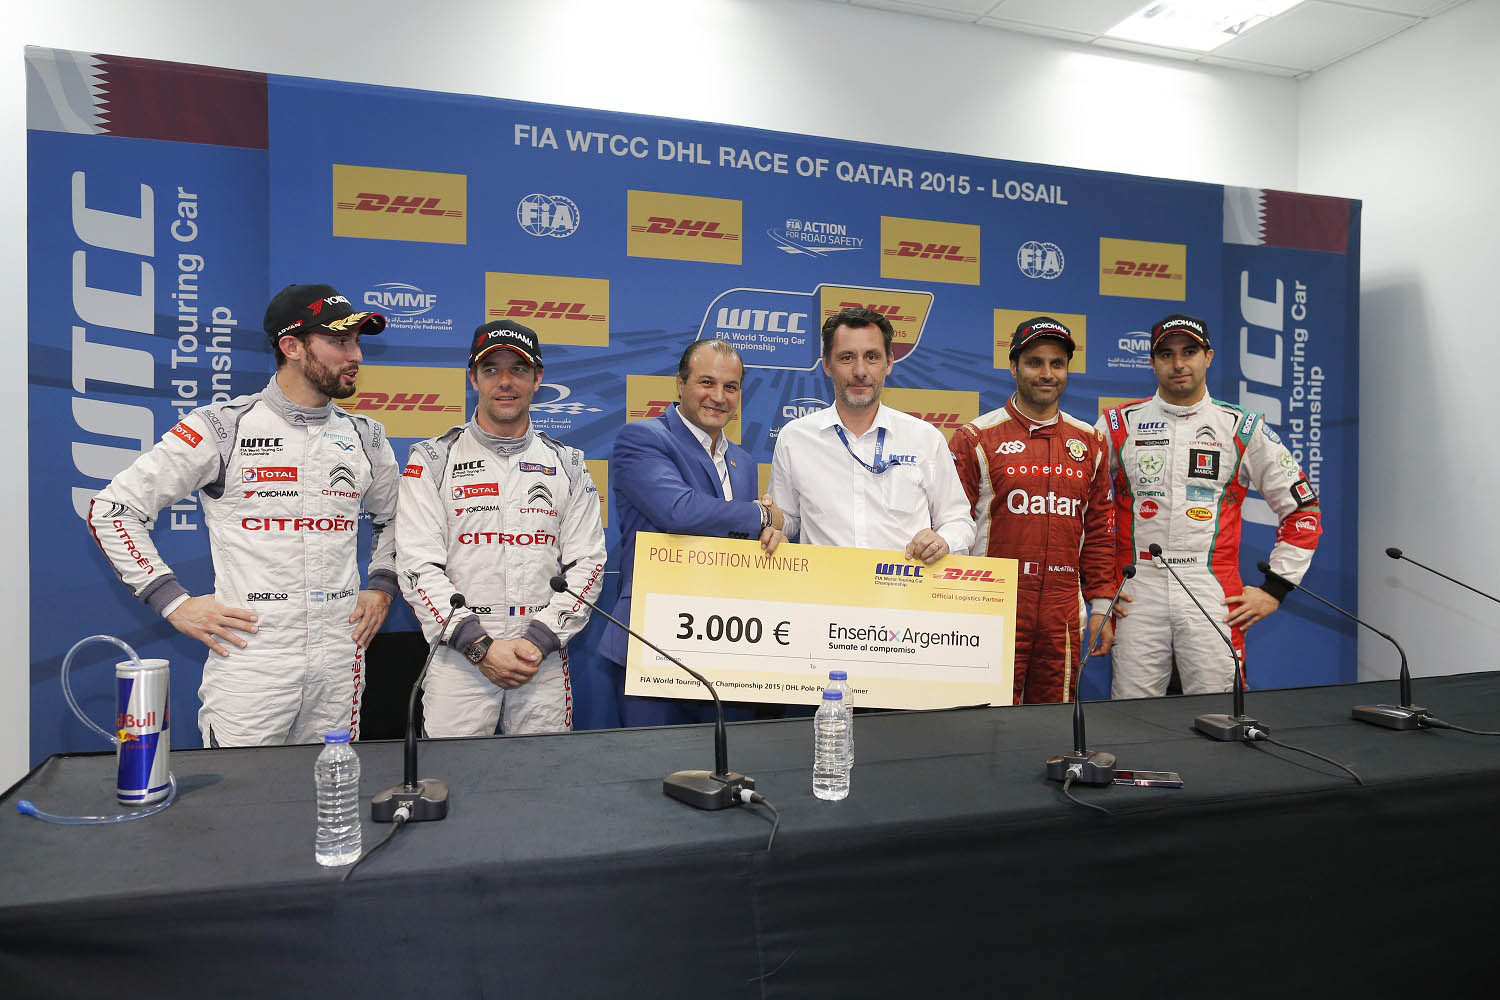 the start of the fia world drivers championship and its fifty year history This year marked another big step in the history of fia world touring car championship became the first ever swedish driver to claim a world title.